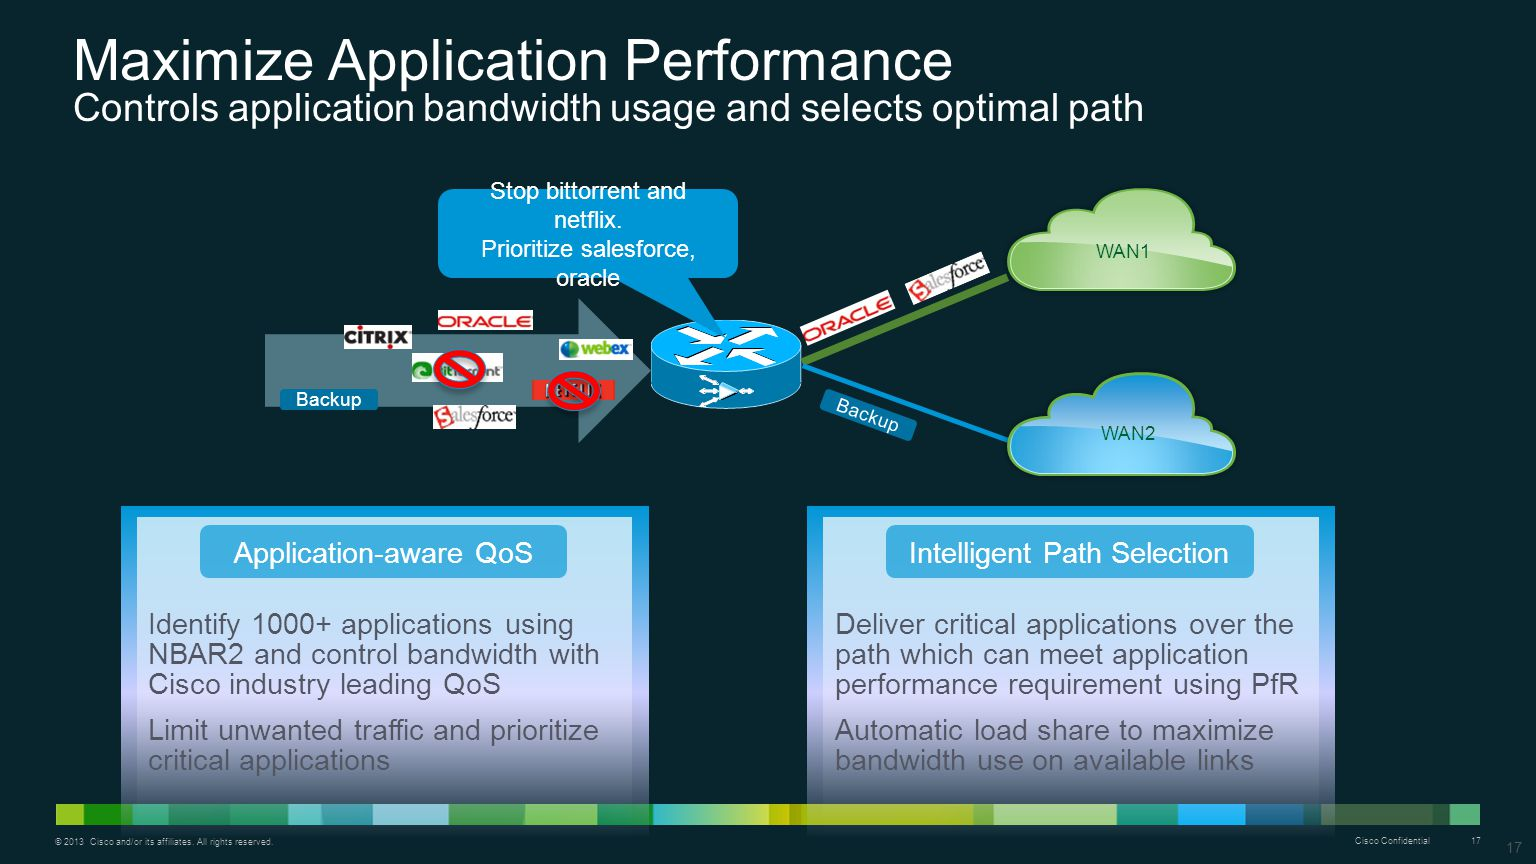 Maximize Application Performance Controls application bandwidth usage and selects optimal path